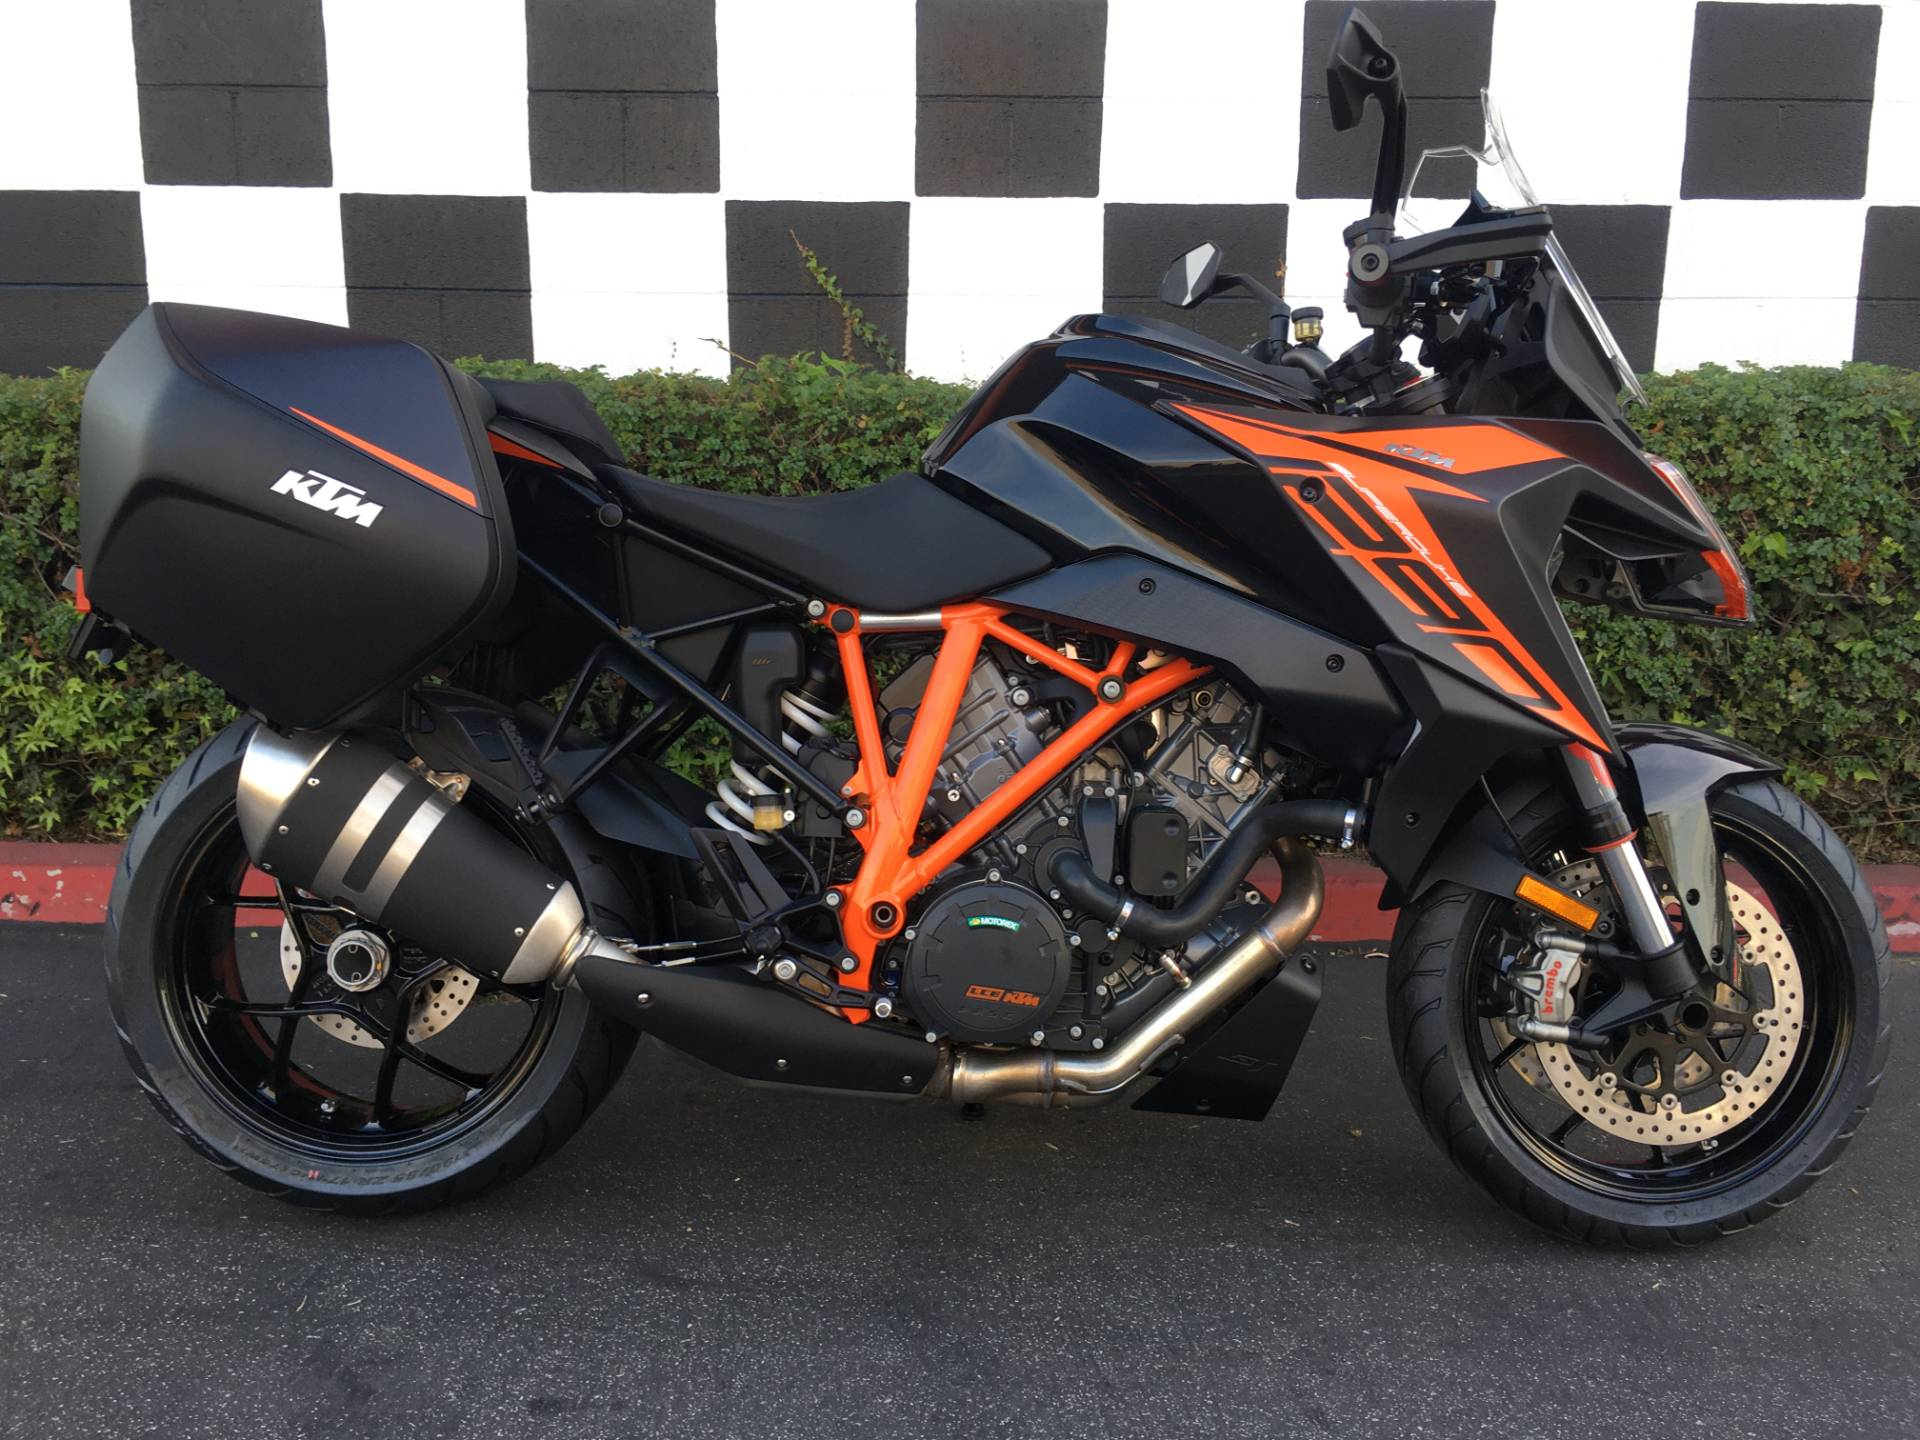 2020 KTM 1290 Super Duke GT in Costa Mesa, California - Photo 1